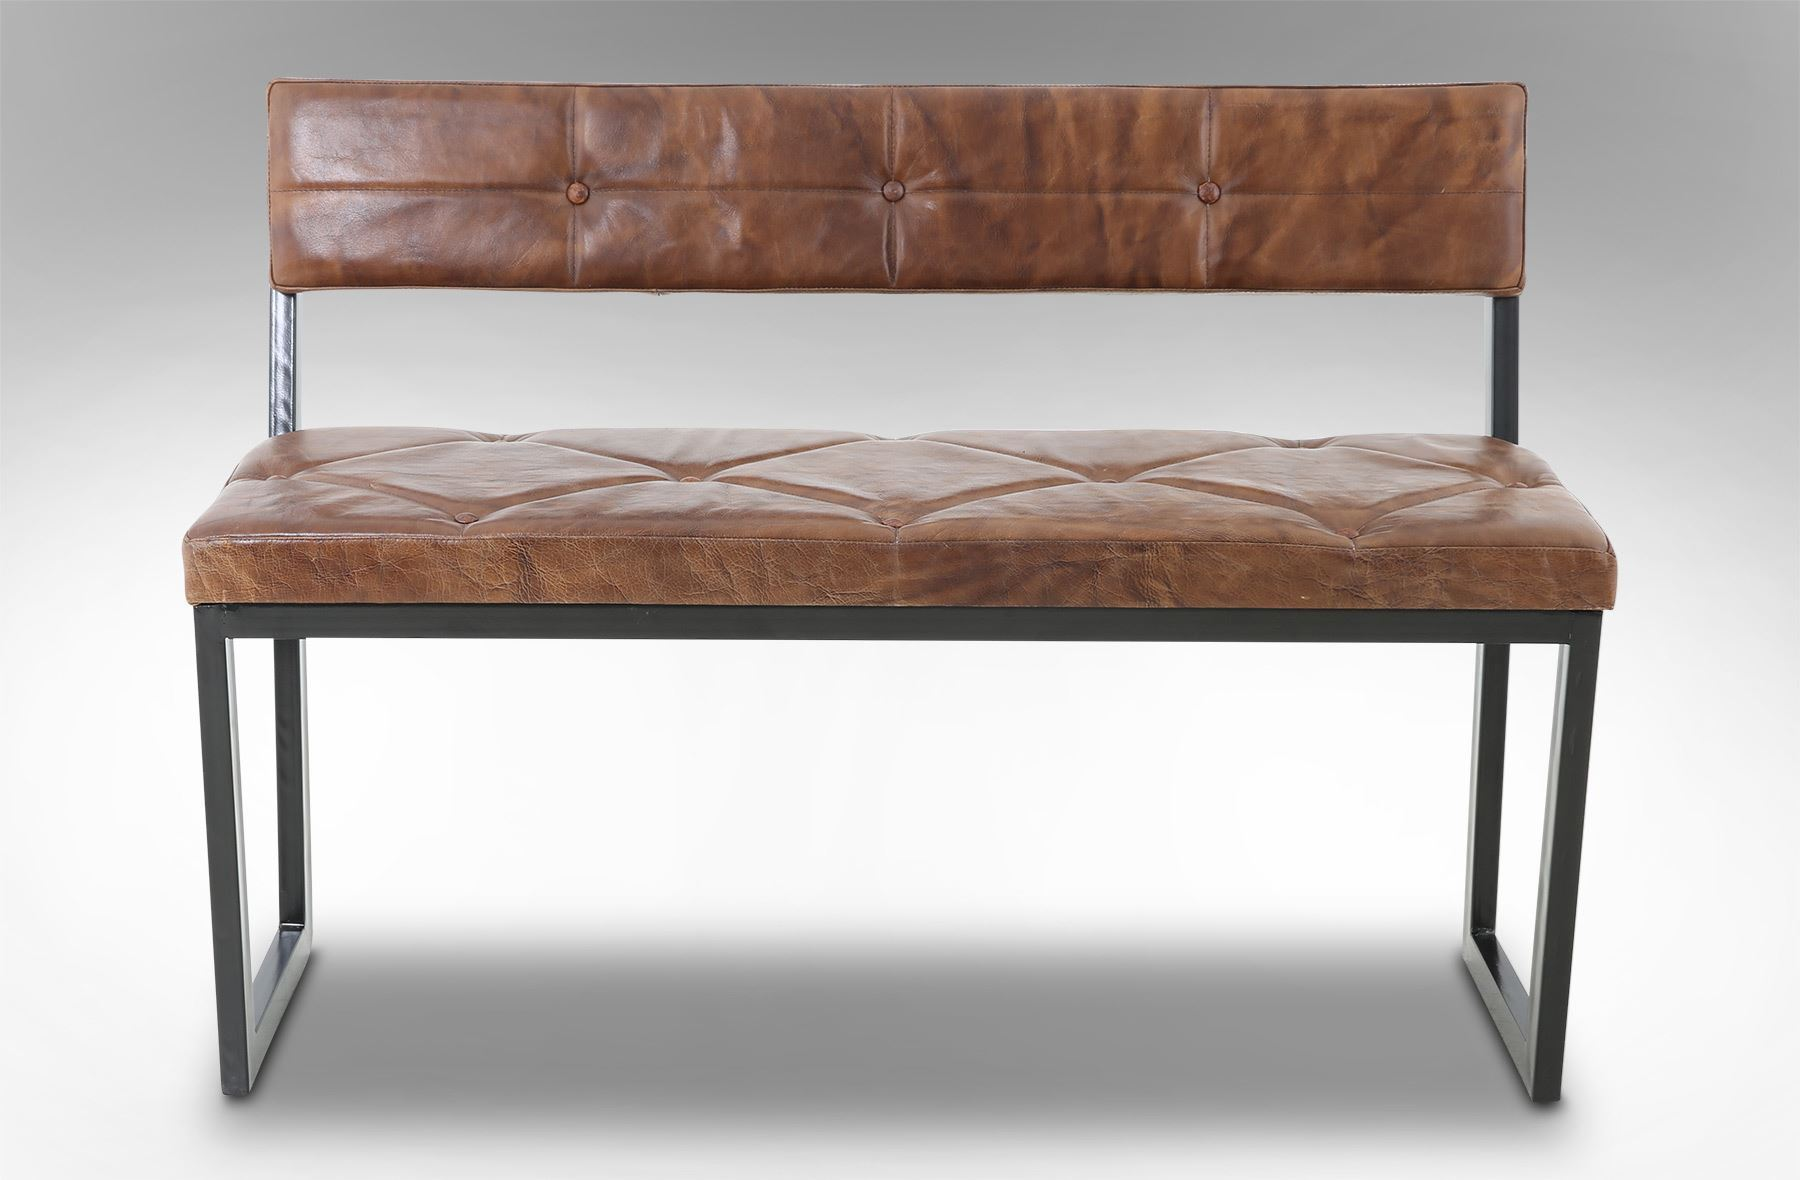 Rice furniture berlin leather bench for Berlin furniture